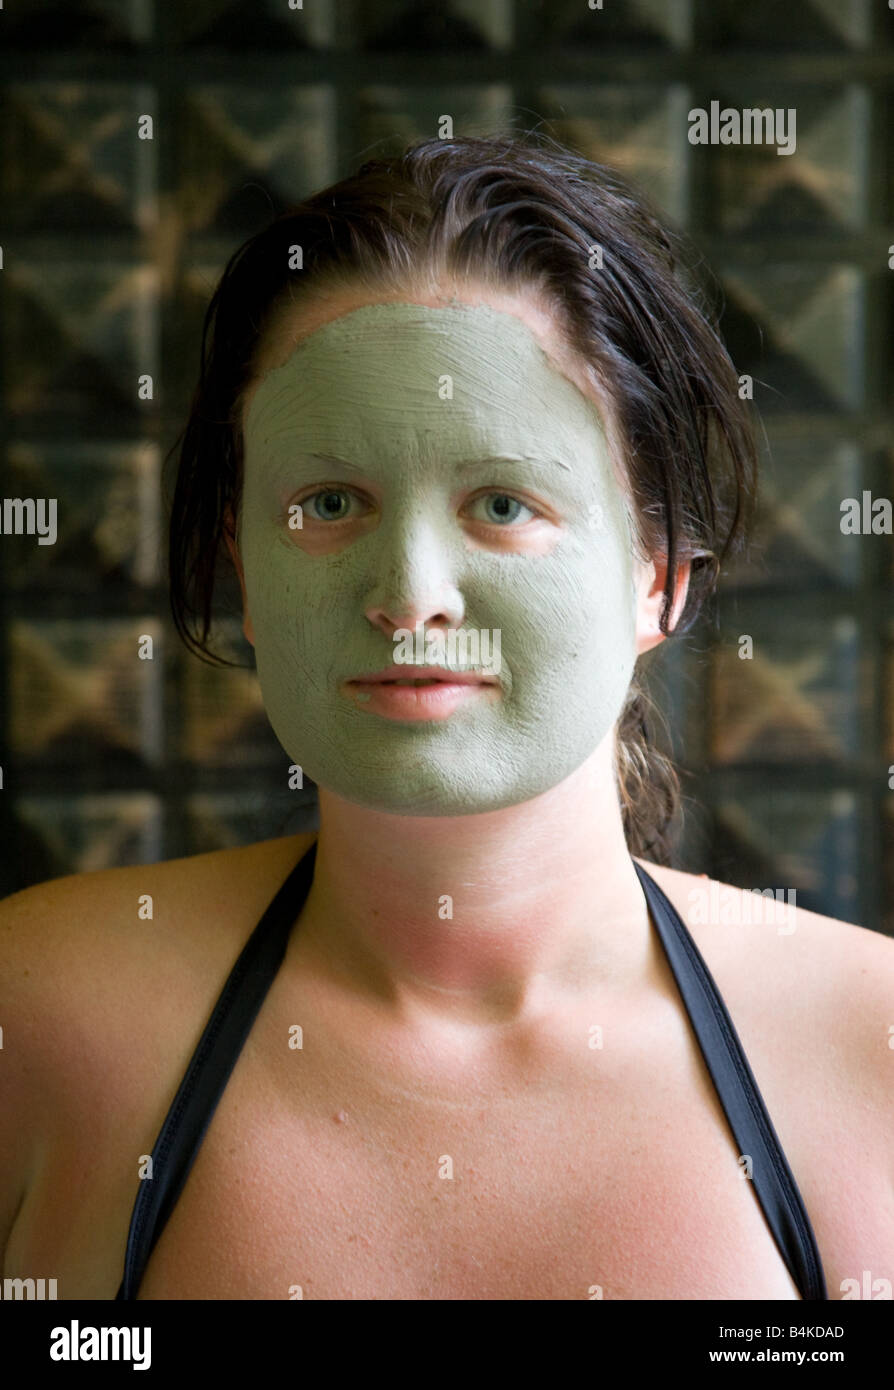 Young woman with a face mask - Stock Image